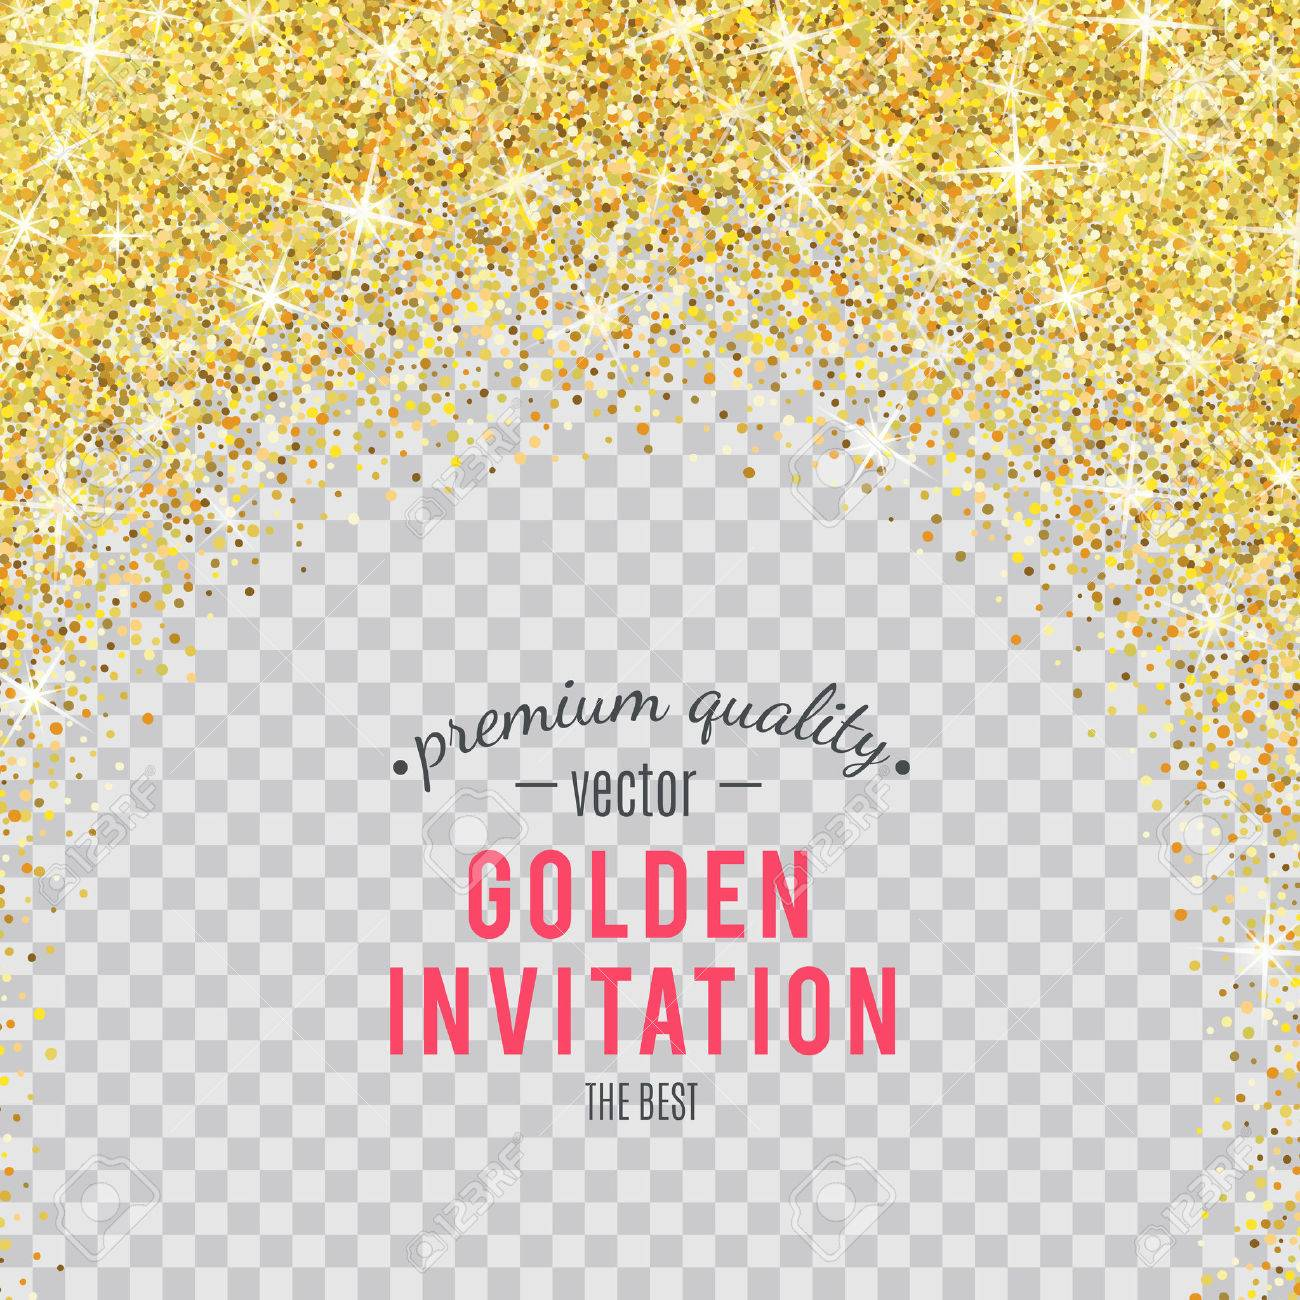 Gold glitter bright vector transparent background golden sparkles - Gold Glitter Texture Isolated On Transparent Background Stock Vector 53983251